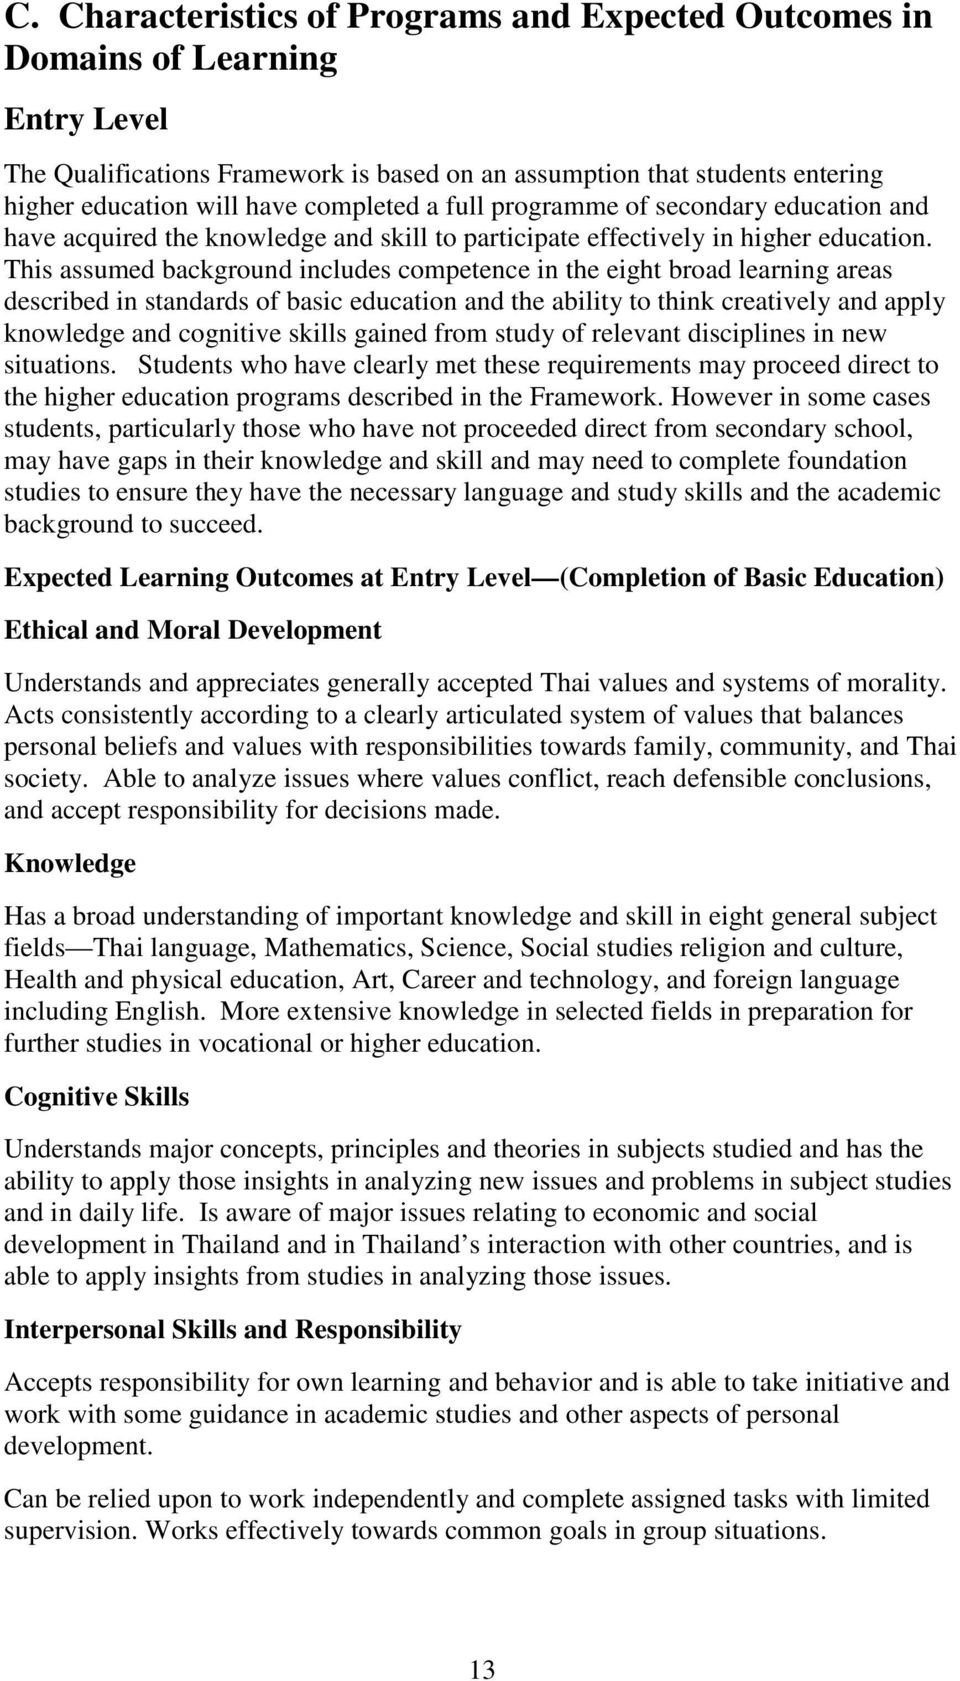 This assumed background includes competence in the eight broad learning areas described in standards of basic education and the ability to think creatively and apply knowledge and cognitive skills